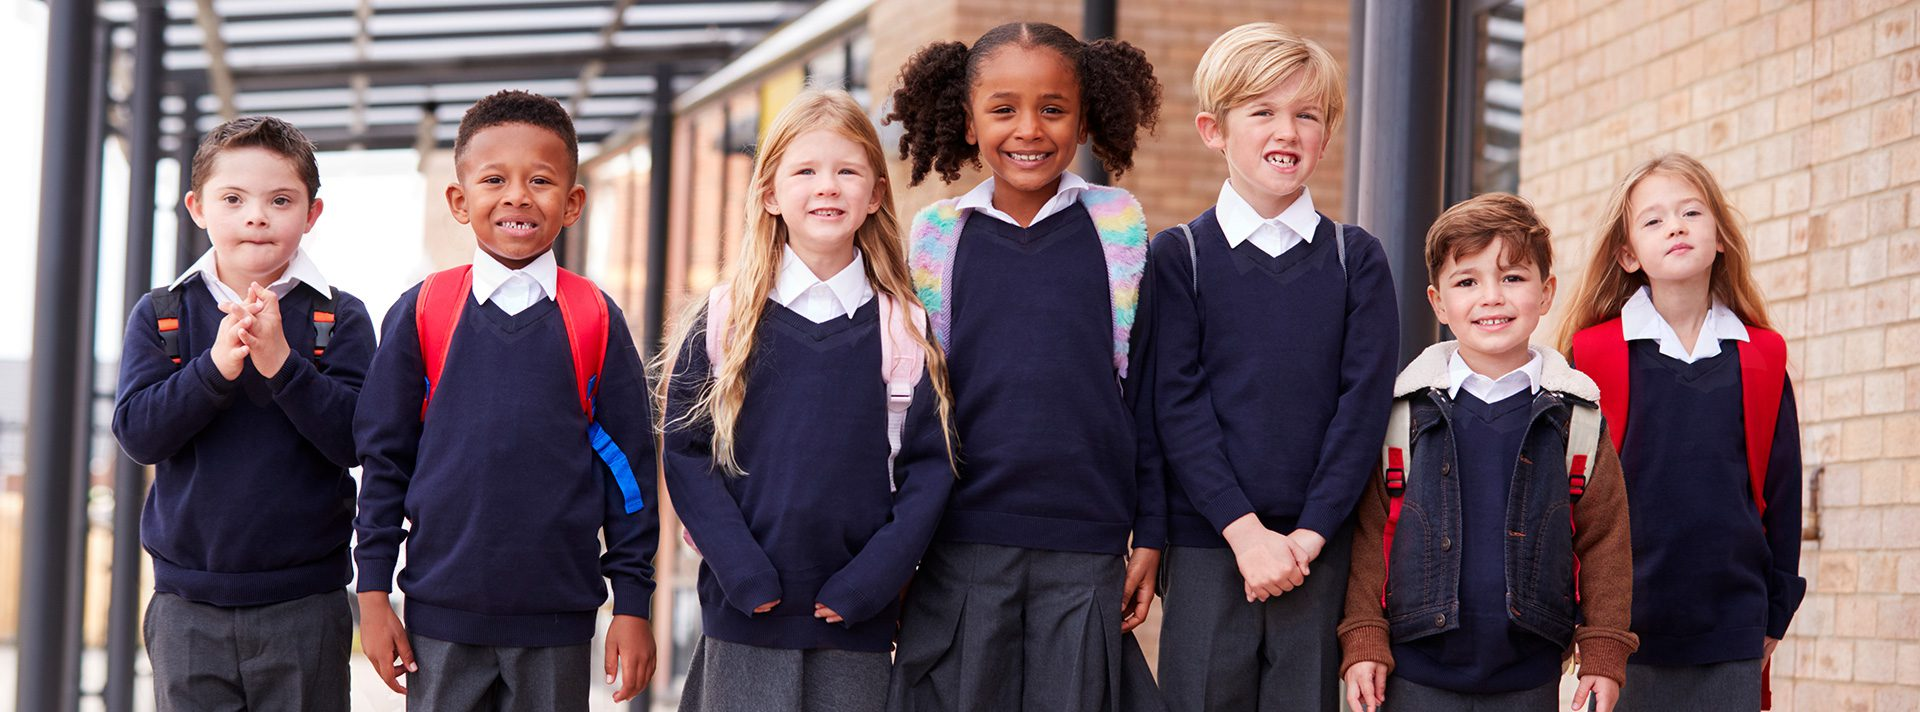 RHE in primary schools: Discovery Education launches 'Health and Relationships'